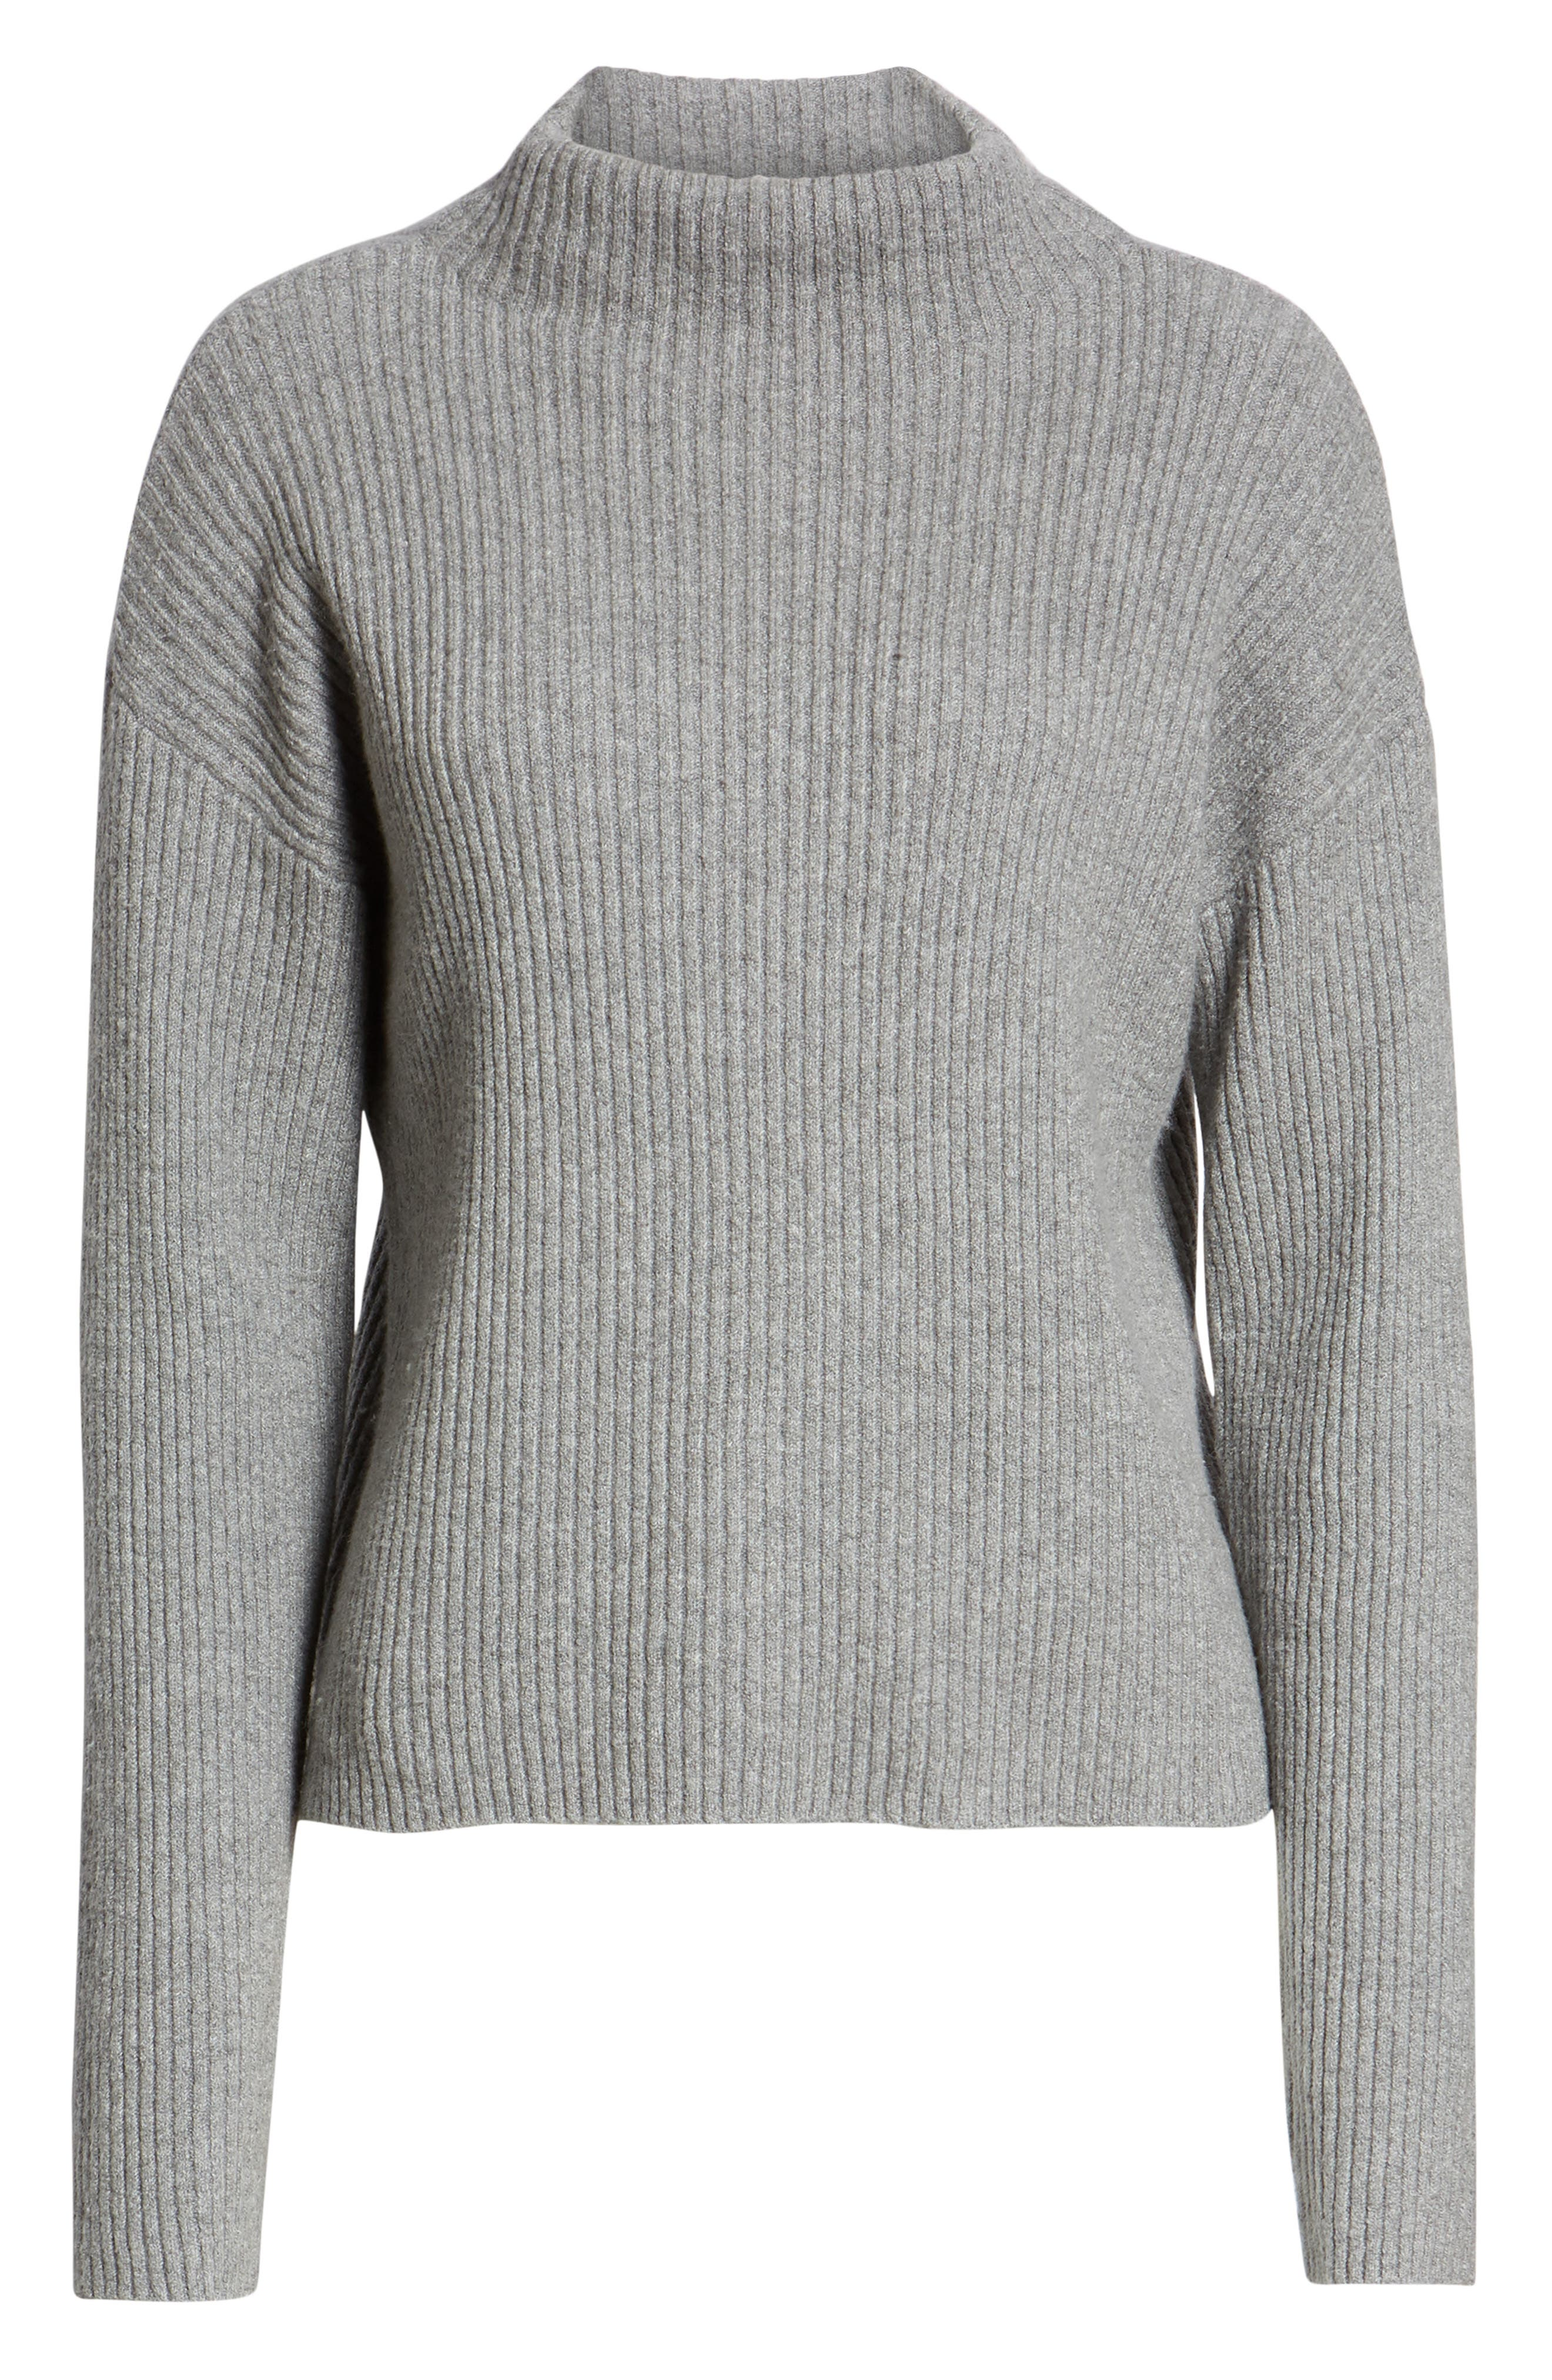 Ribbed Funnel Neck Sweater,                             Alternate thumbnail 6, color,                             030